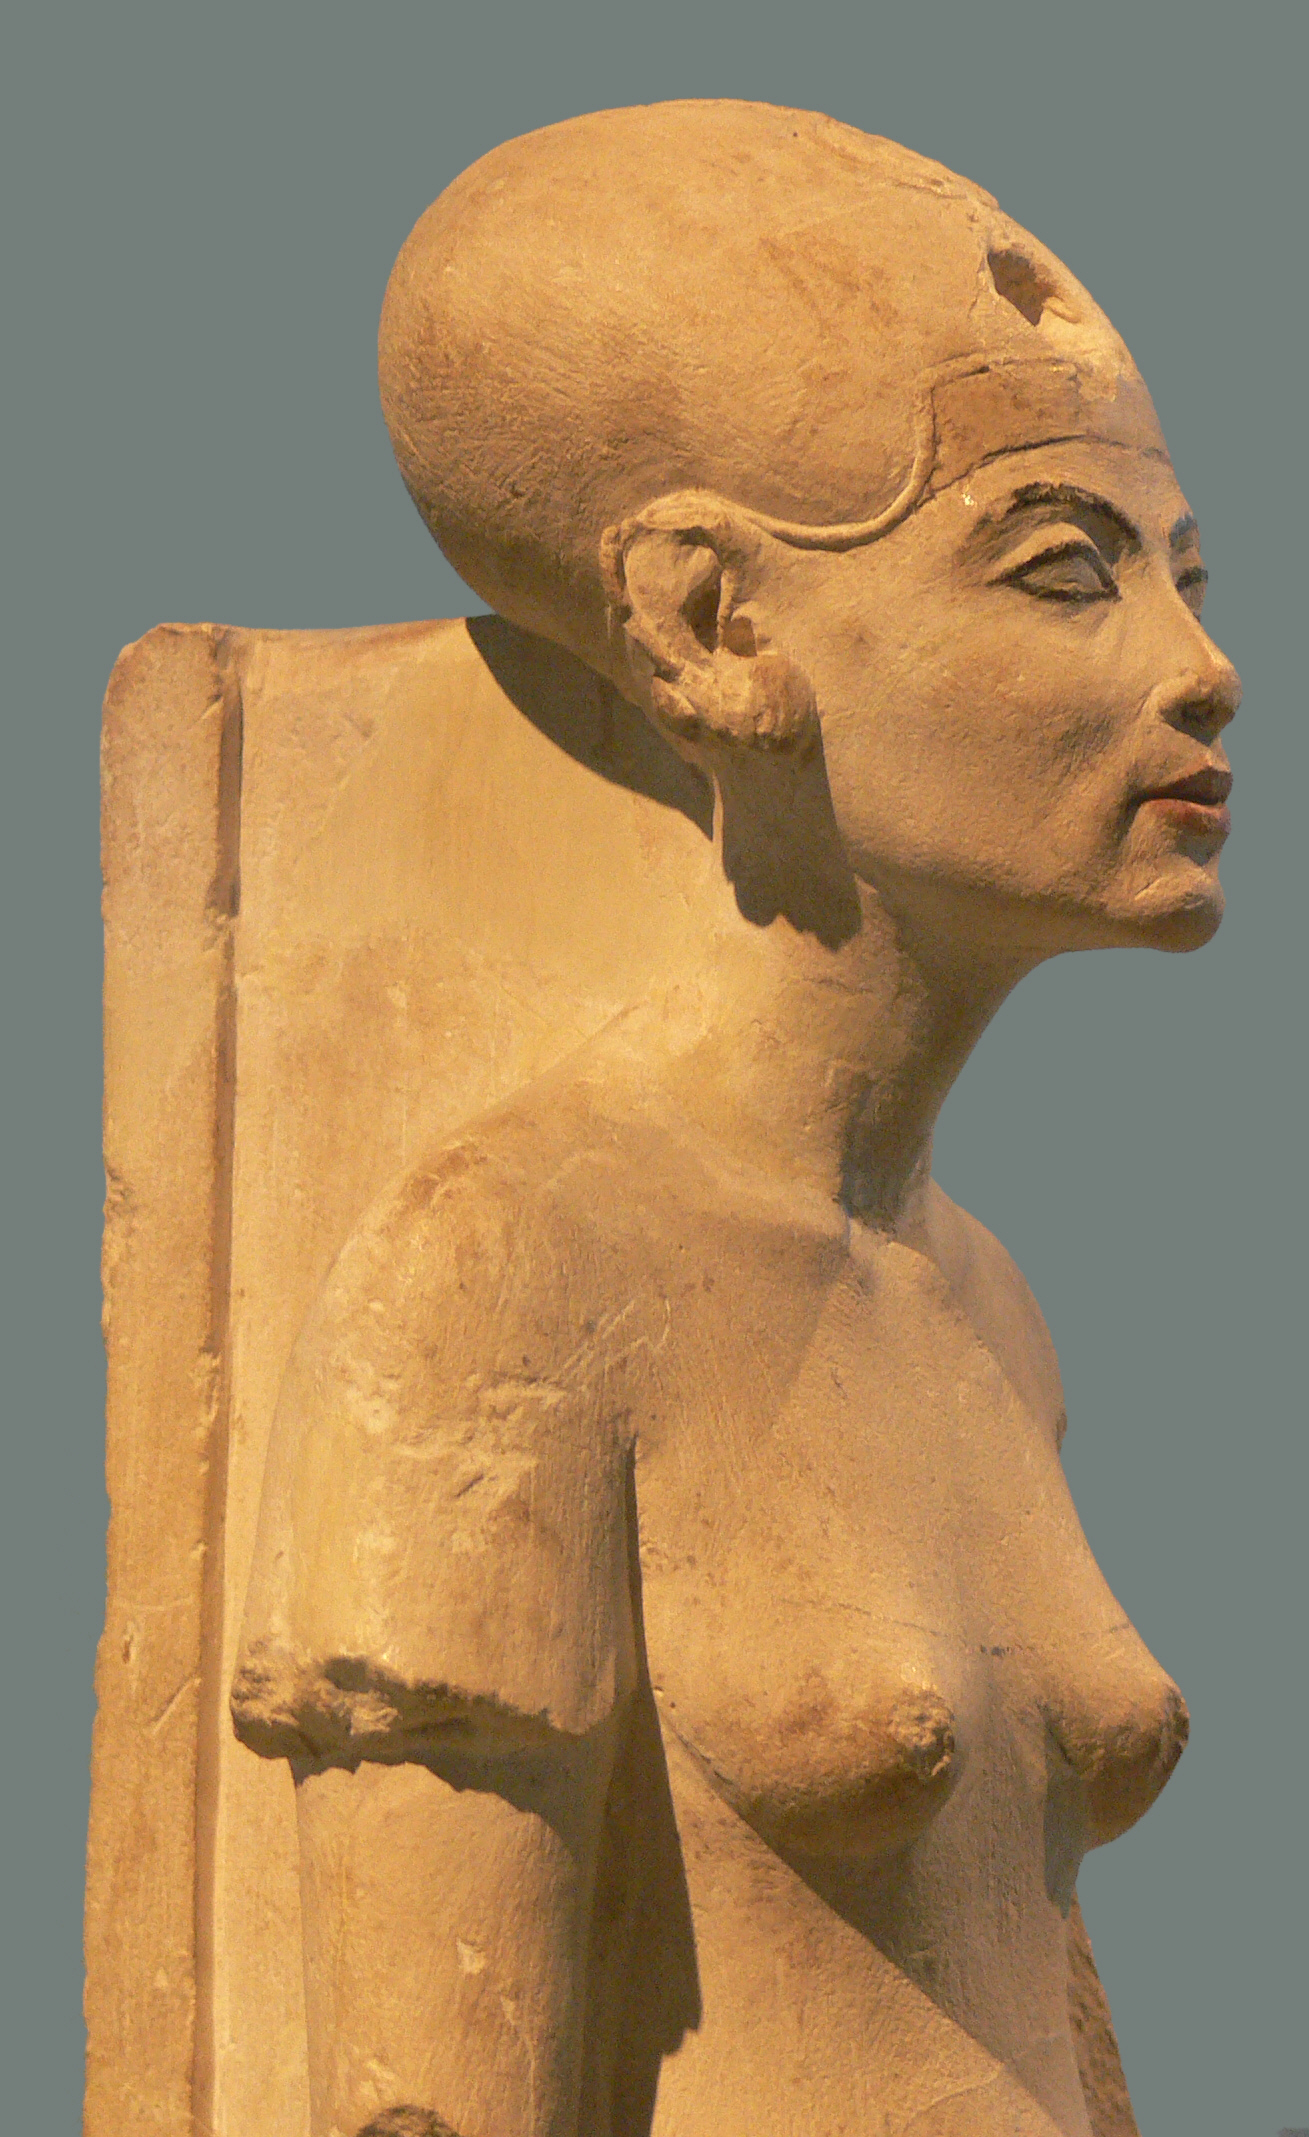 The famous funerary mask of King Tut seems to help prove that Nefertiti did indeed become pharaoh